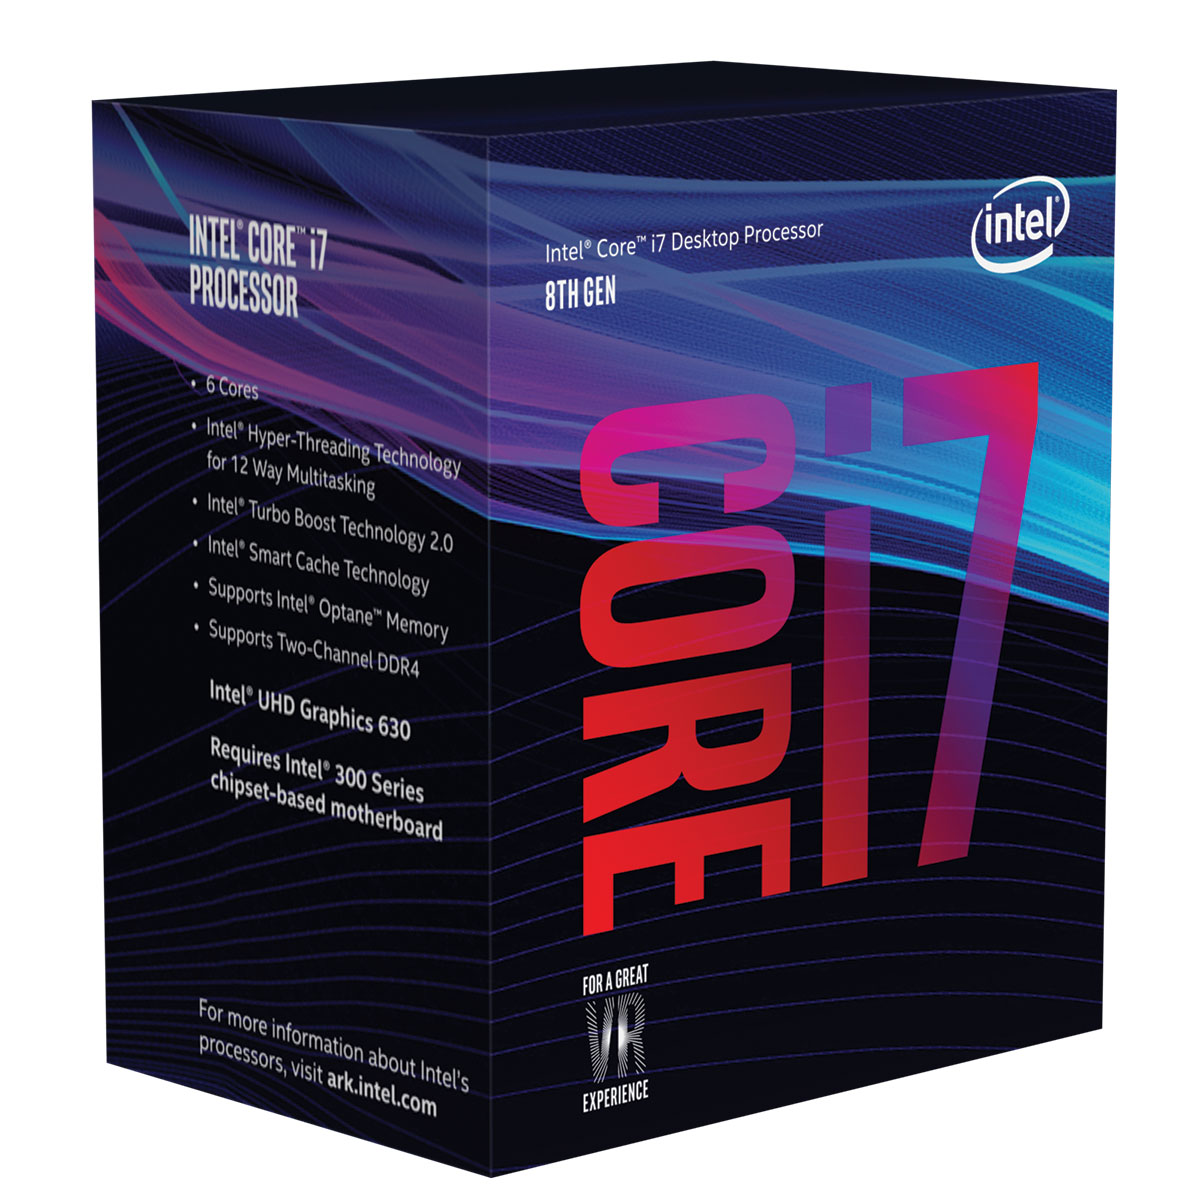 Processeur Intel Core i7 8700 Six Core (3.70 GHz) Socket 1151 - Cache 12 Mo (Box), informatique ile de la réunion